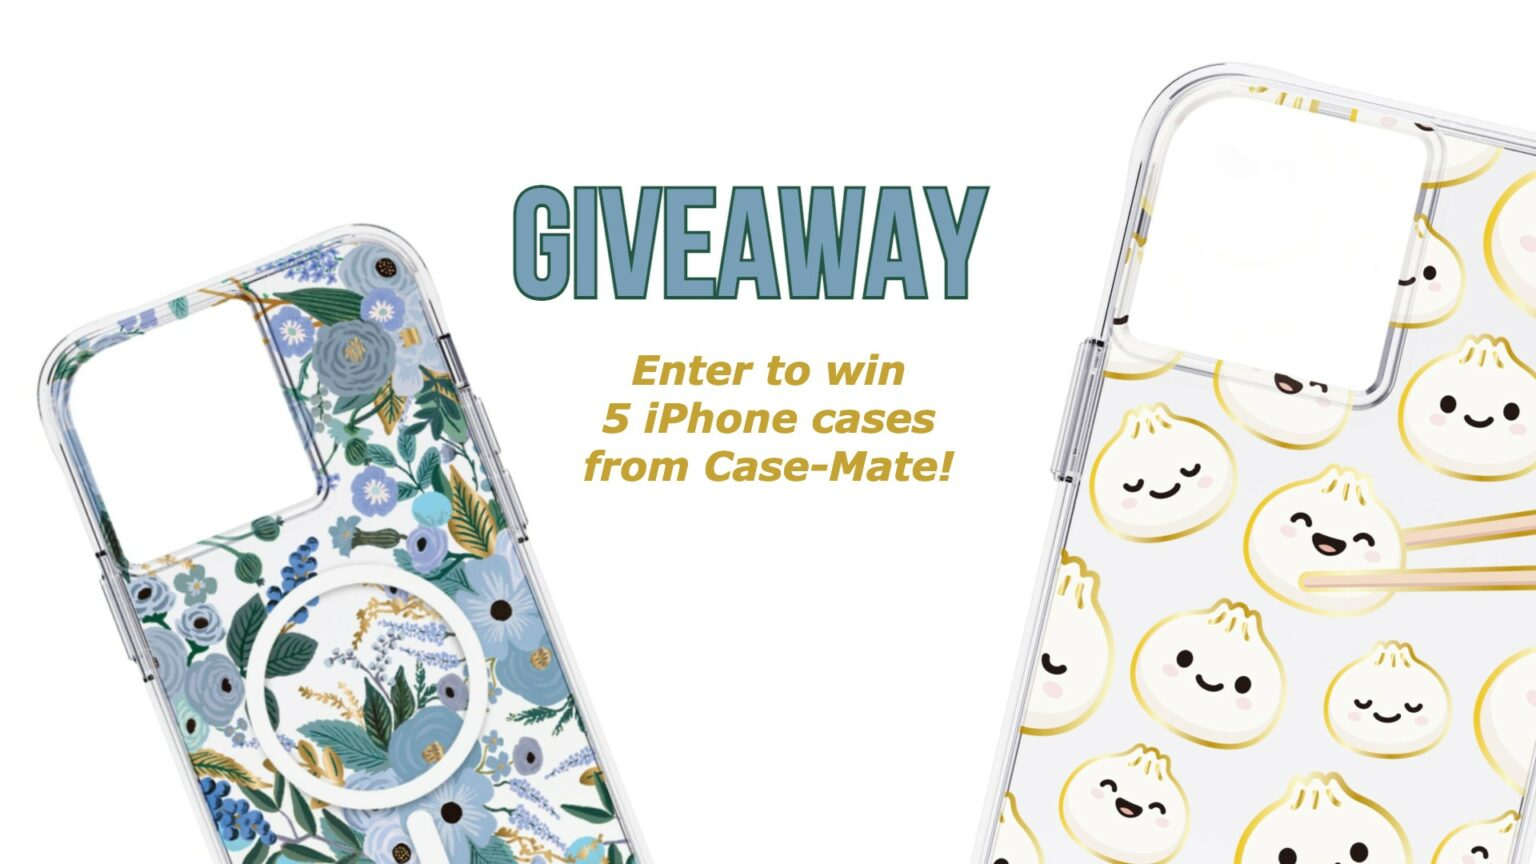 Case-Mate iPhone 13 cases giveaway: Enter to win a bundle of five gorgeous iPhone cases from Case-Mate.